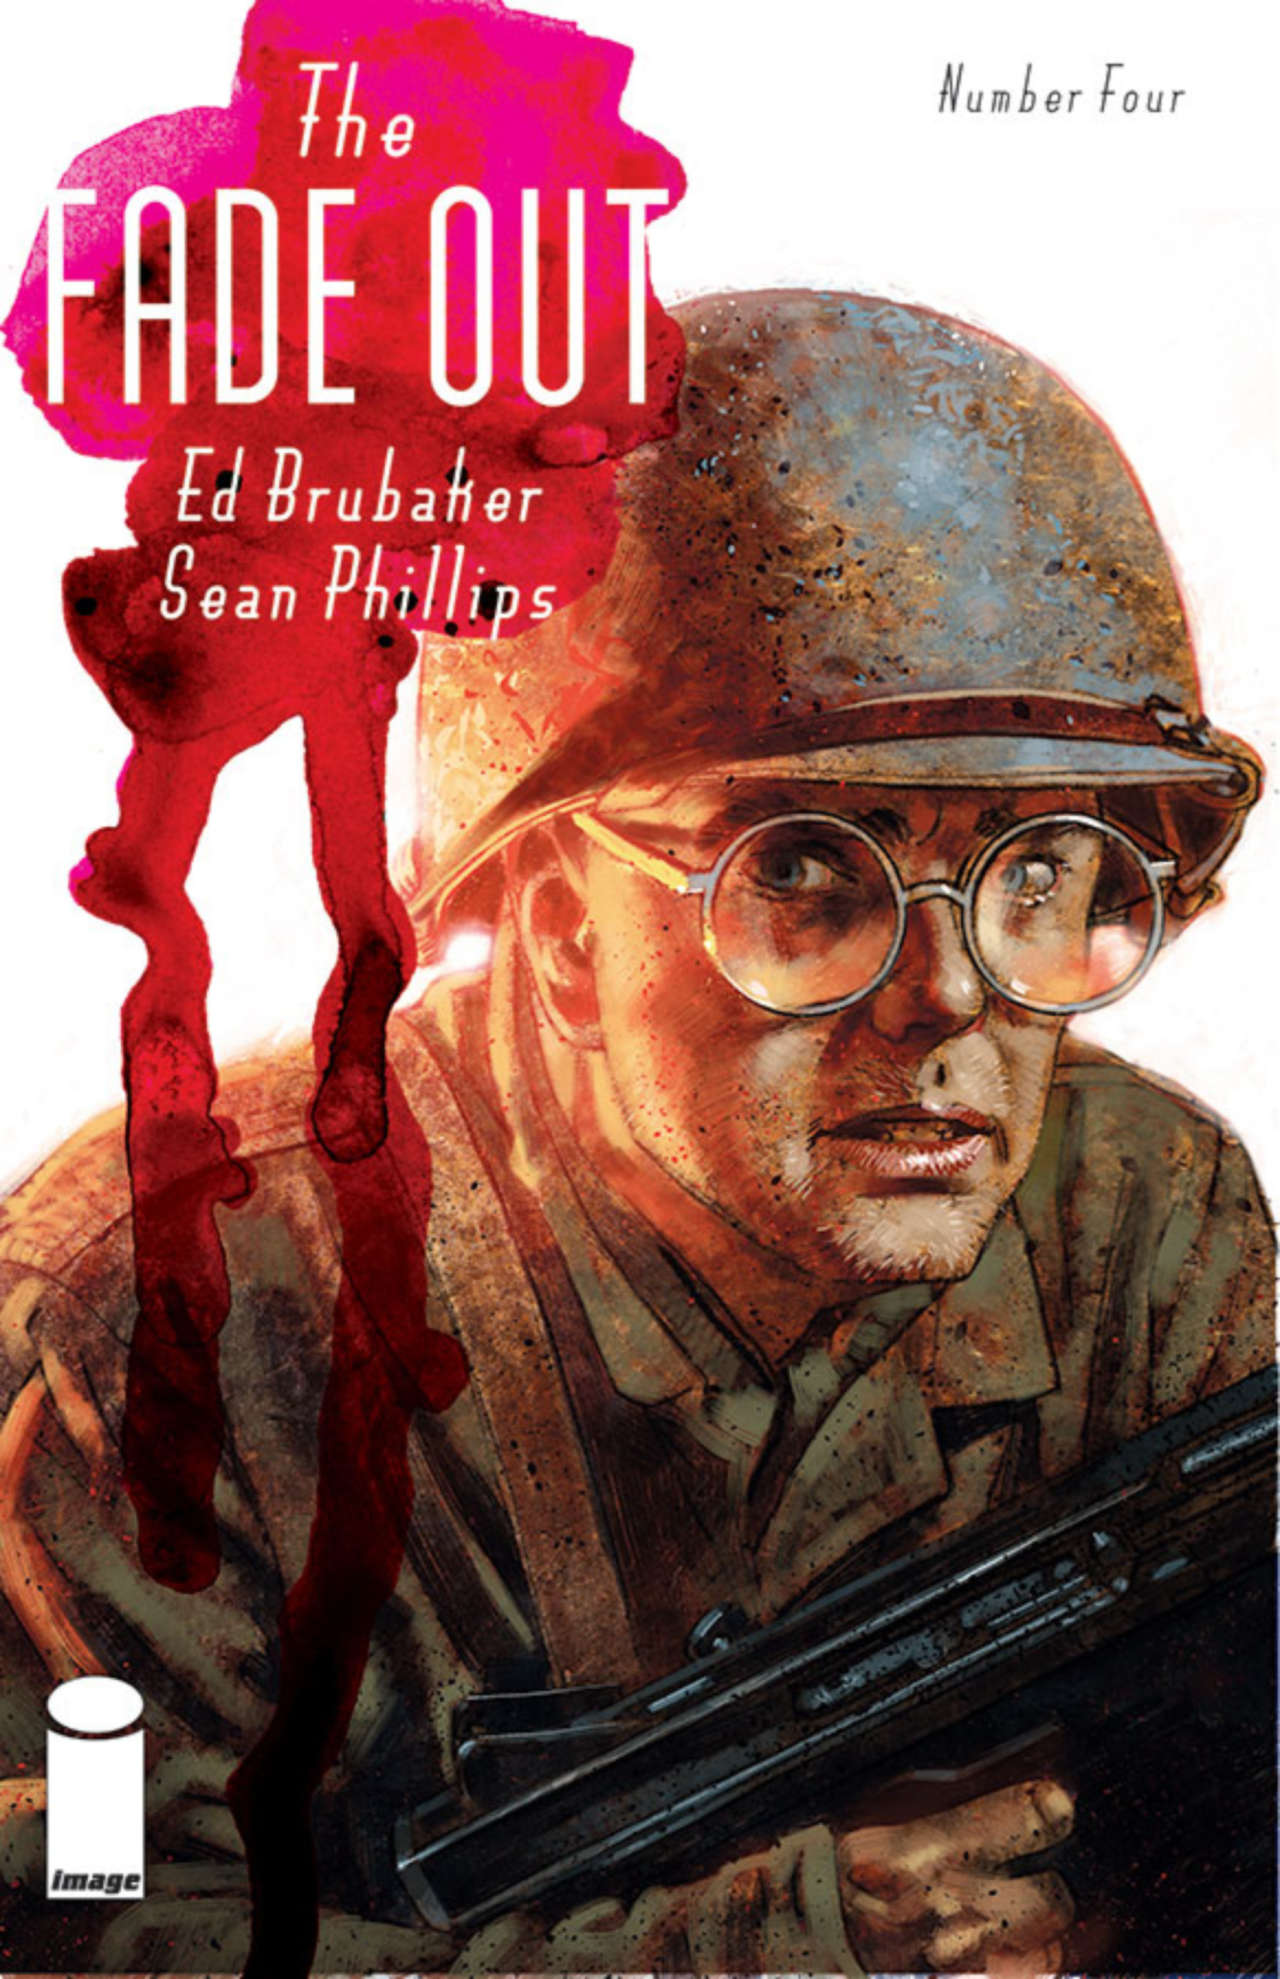 The Fade Out #4: A Beautiful Dedication (Review)